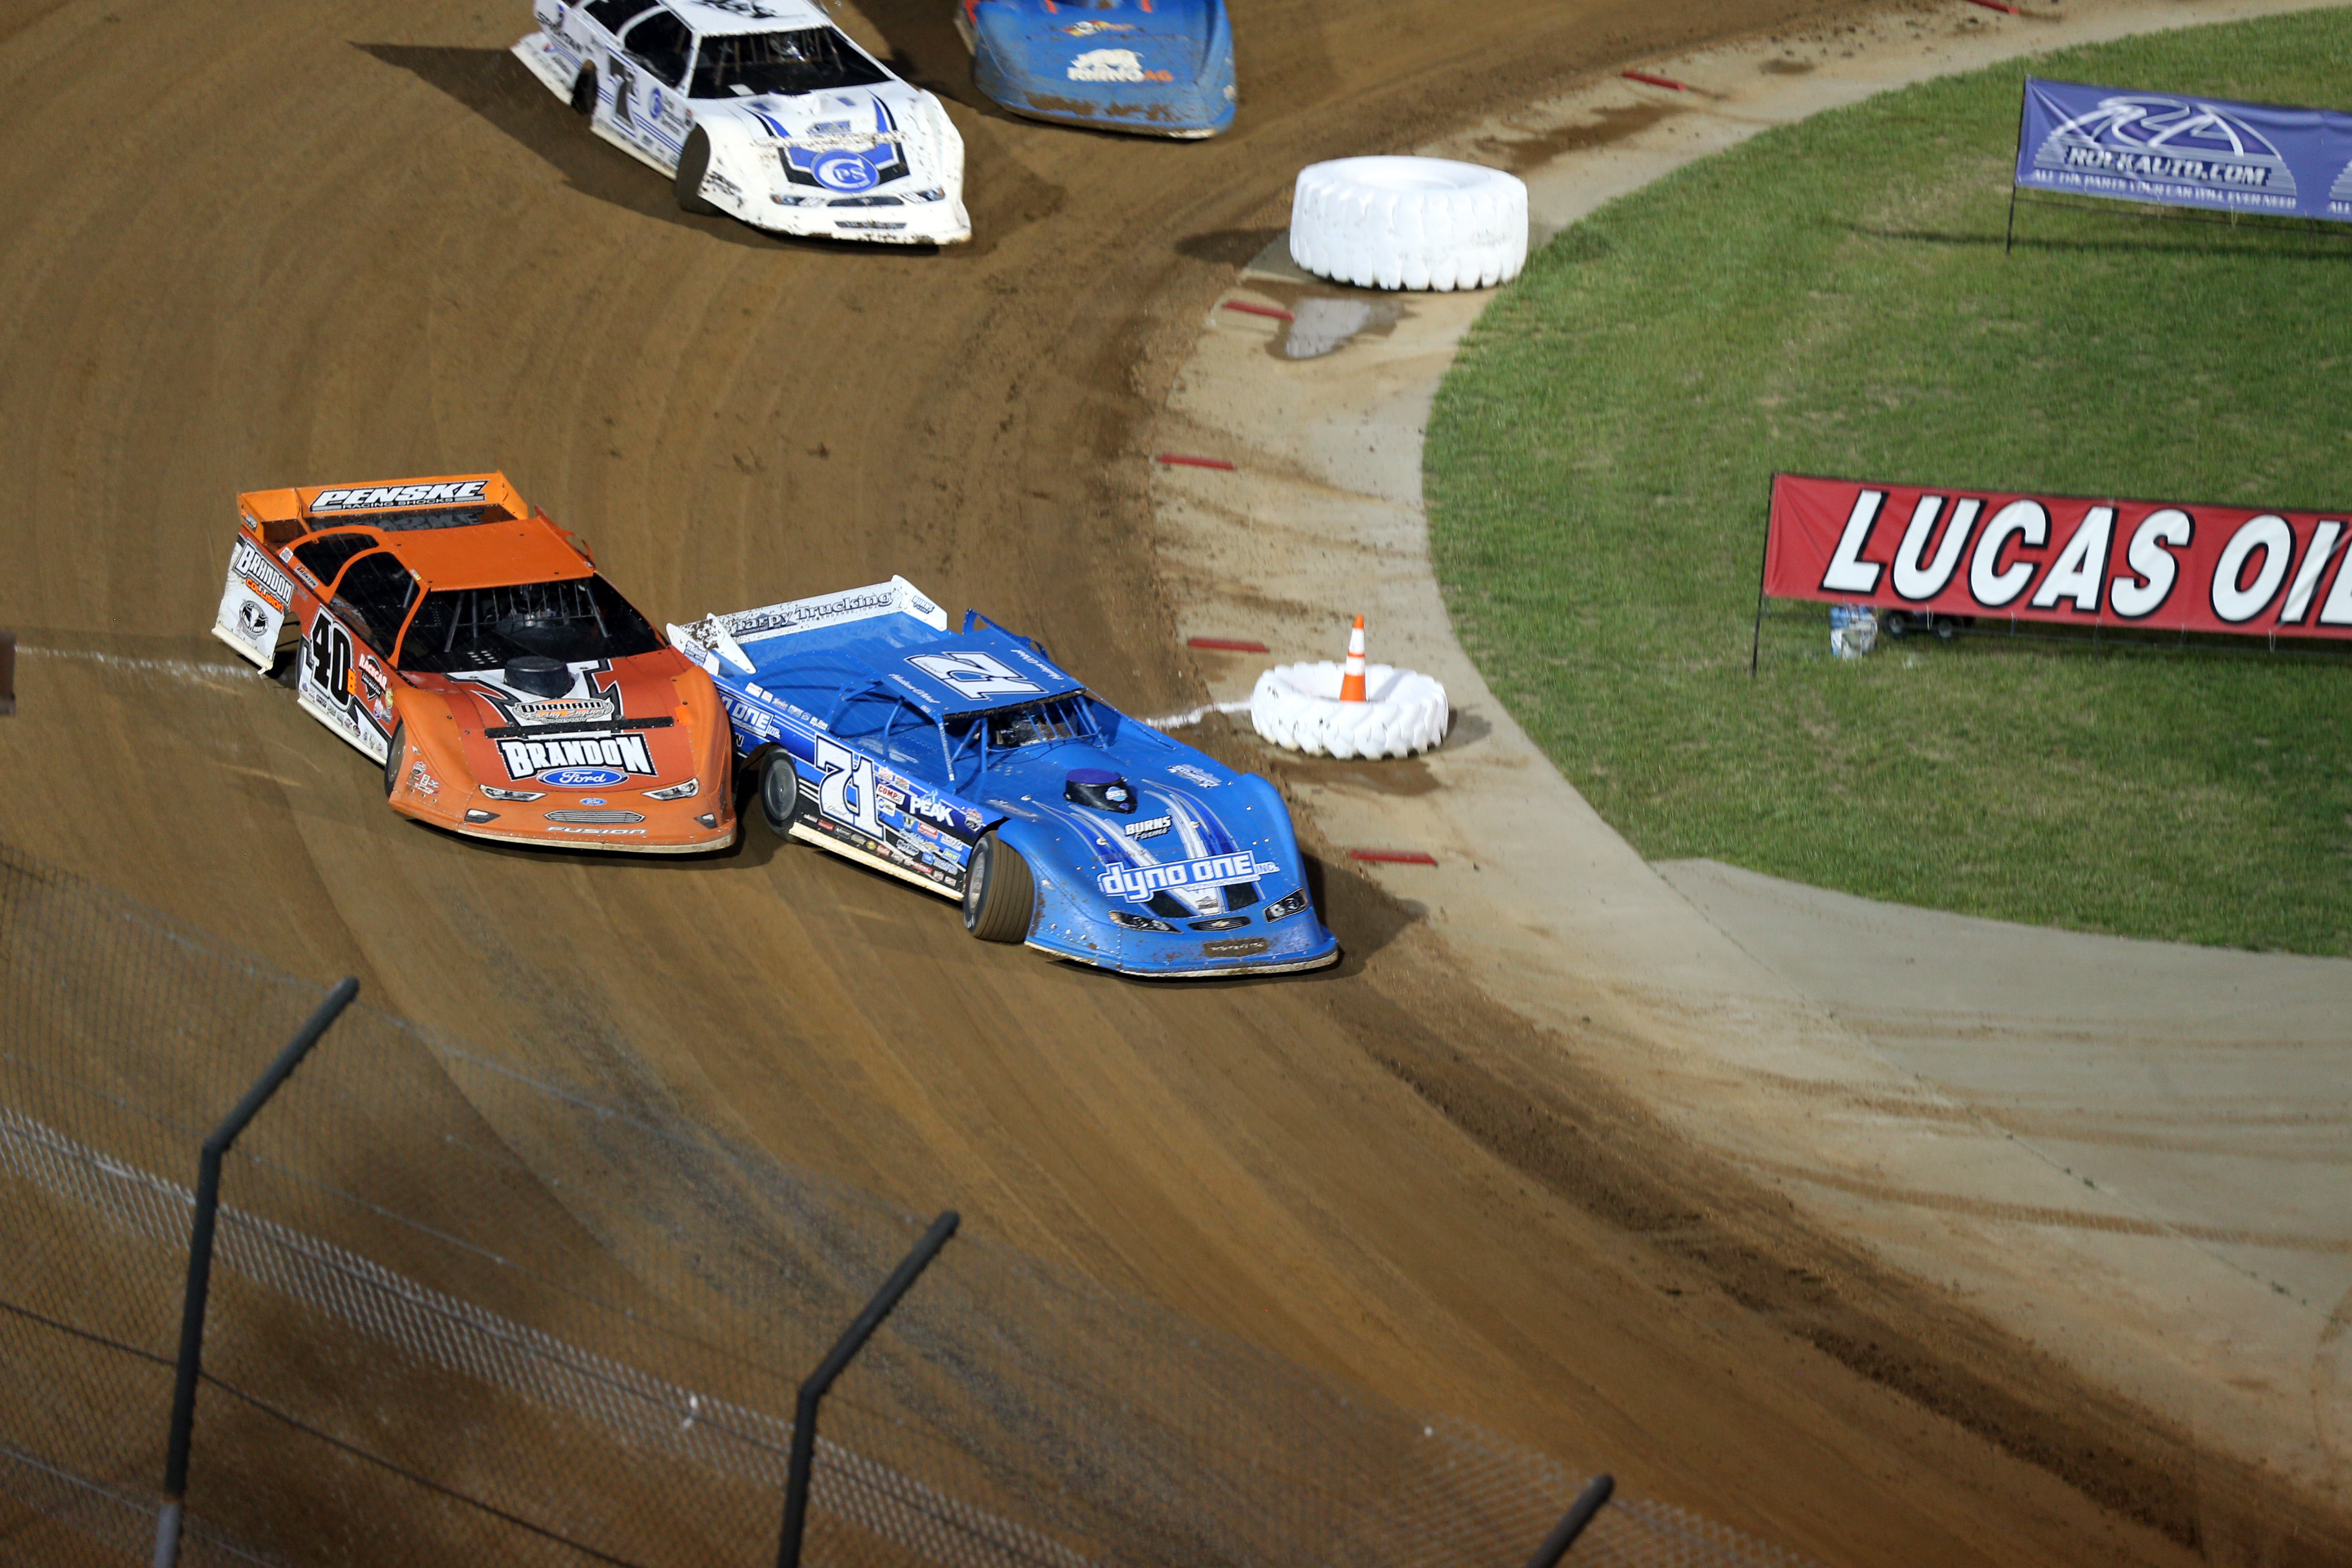 Hudson O'Neal and Kyle Bronson race for the lead at Lucas Oil Speedway 7751